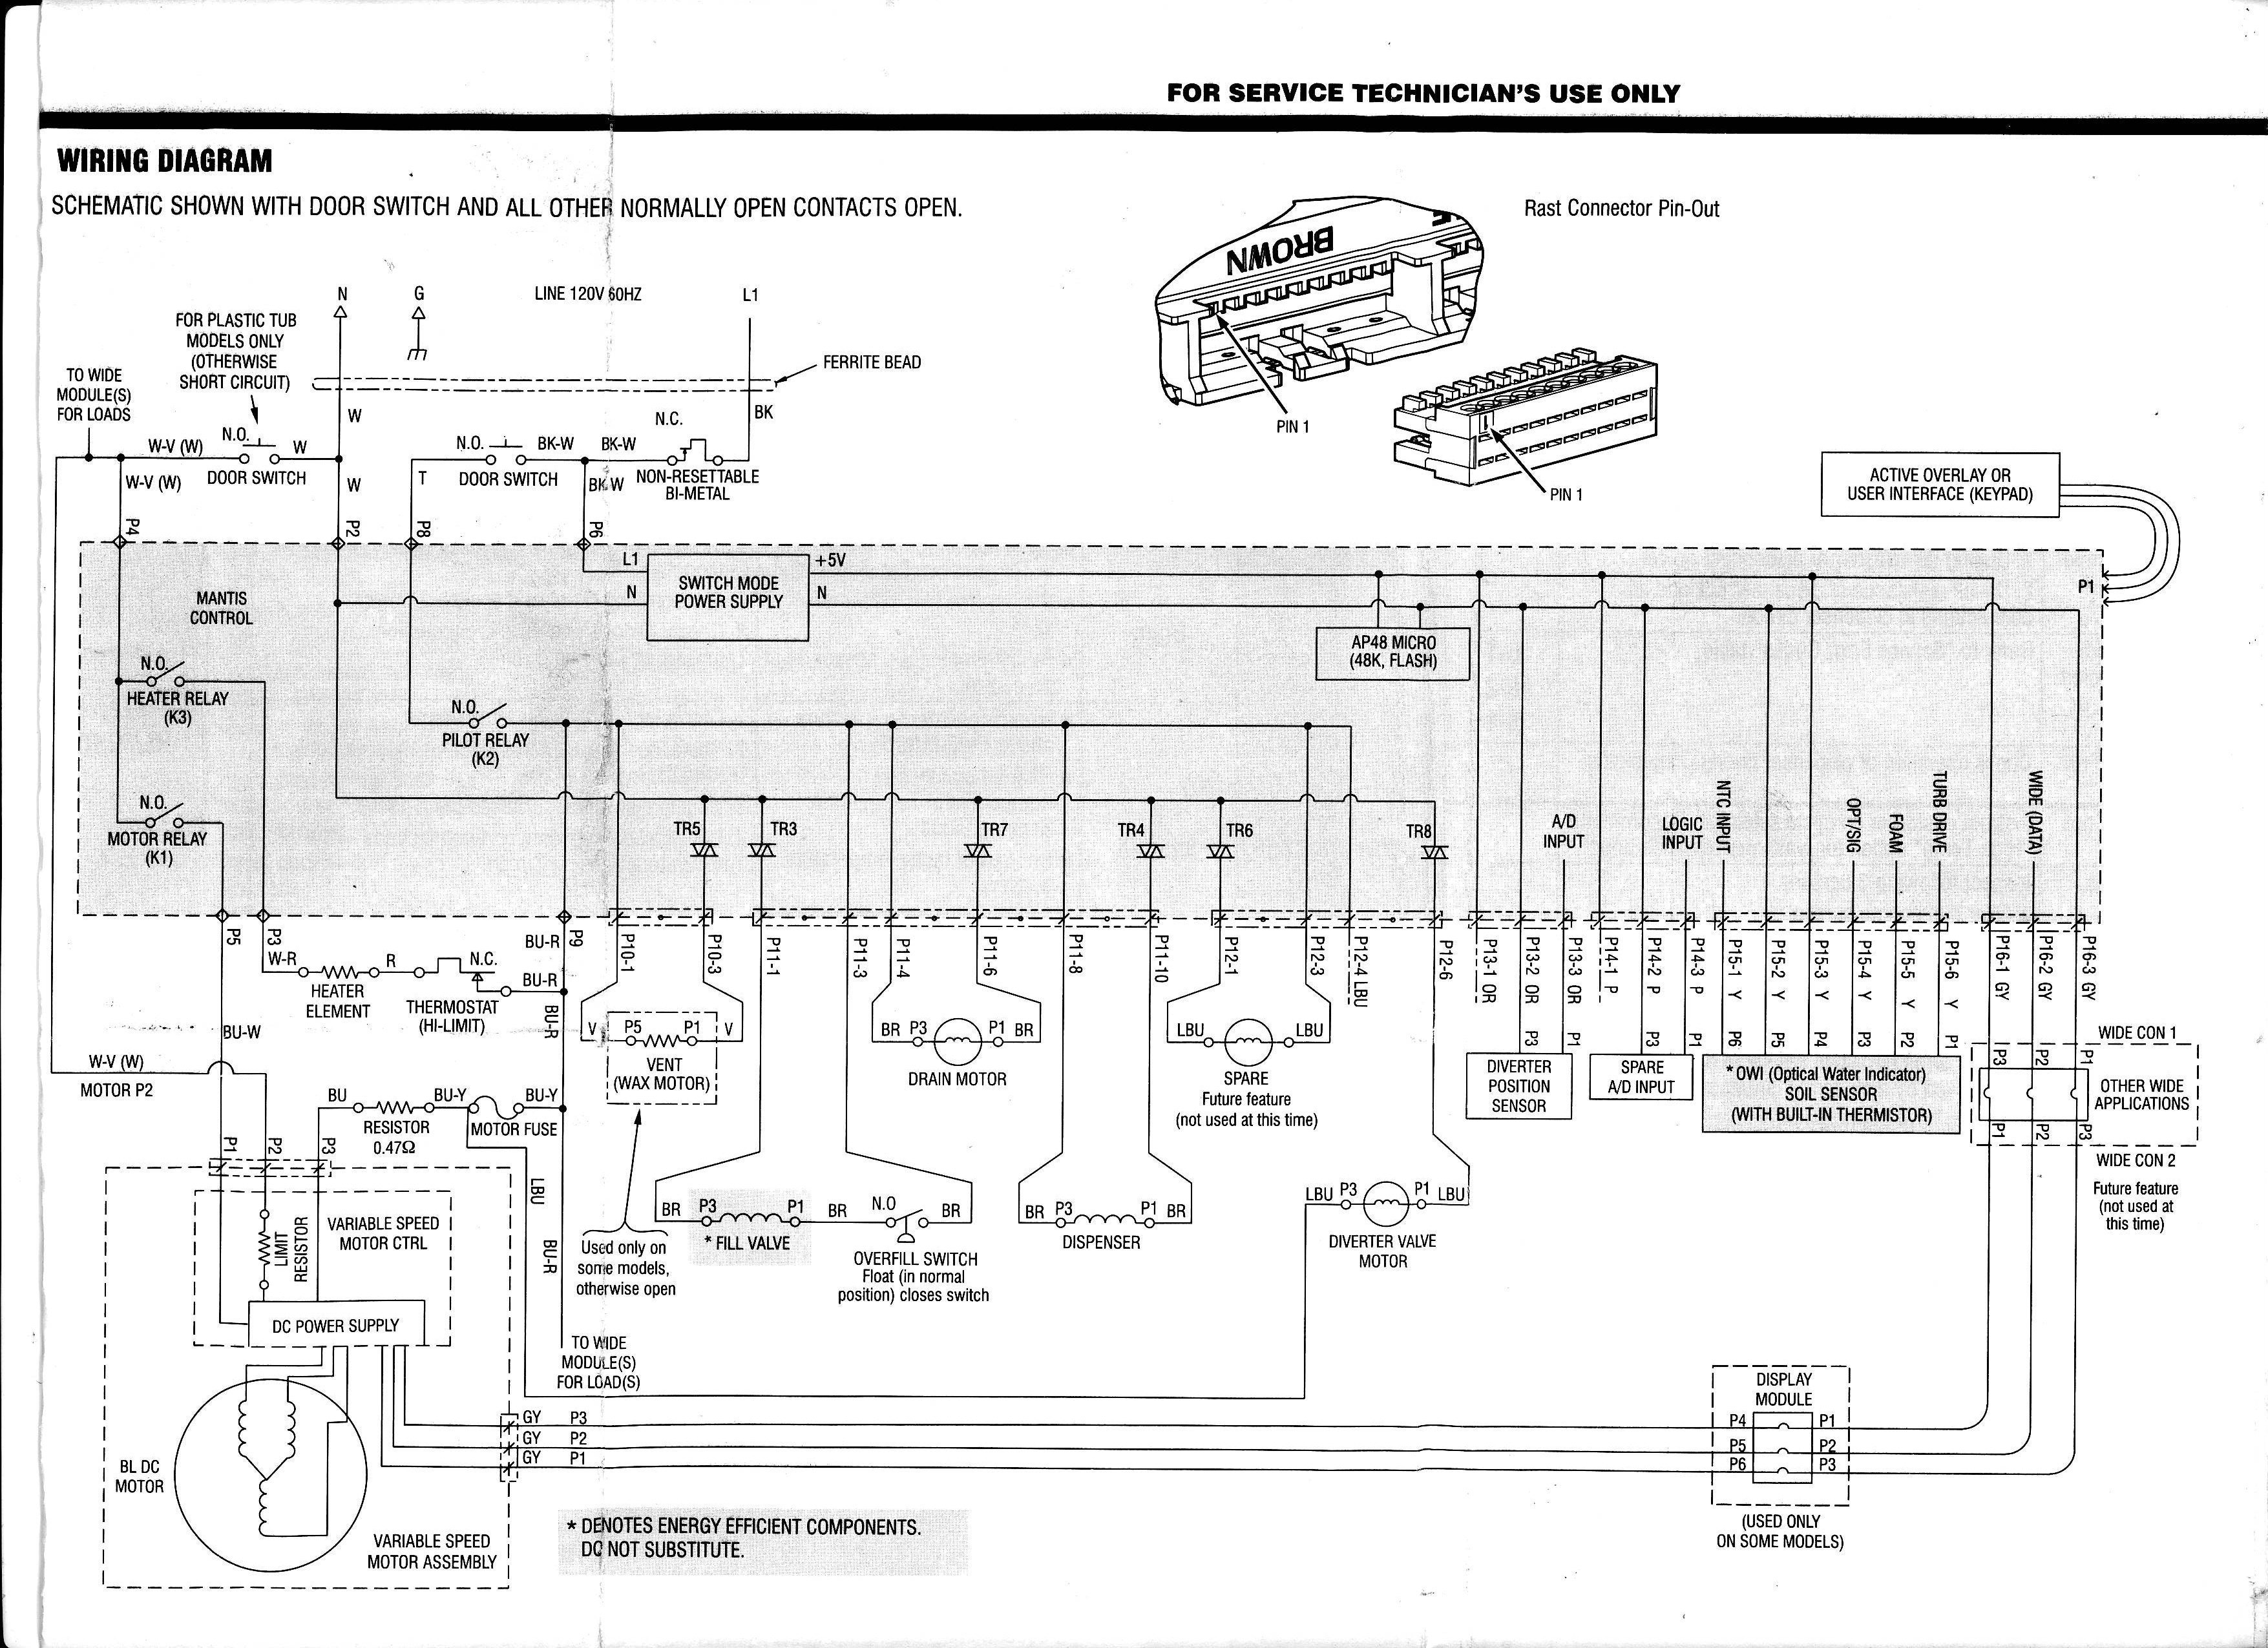 Bosch Dishwasher Wiring Diagram Elgrifo Page 38 Of 76 Extention Wiring Diagram Of Bosch Dishwasher Wiring Diagram